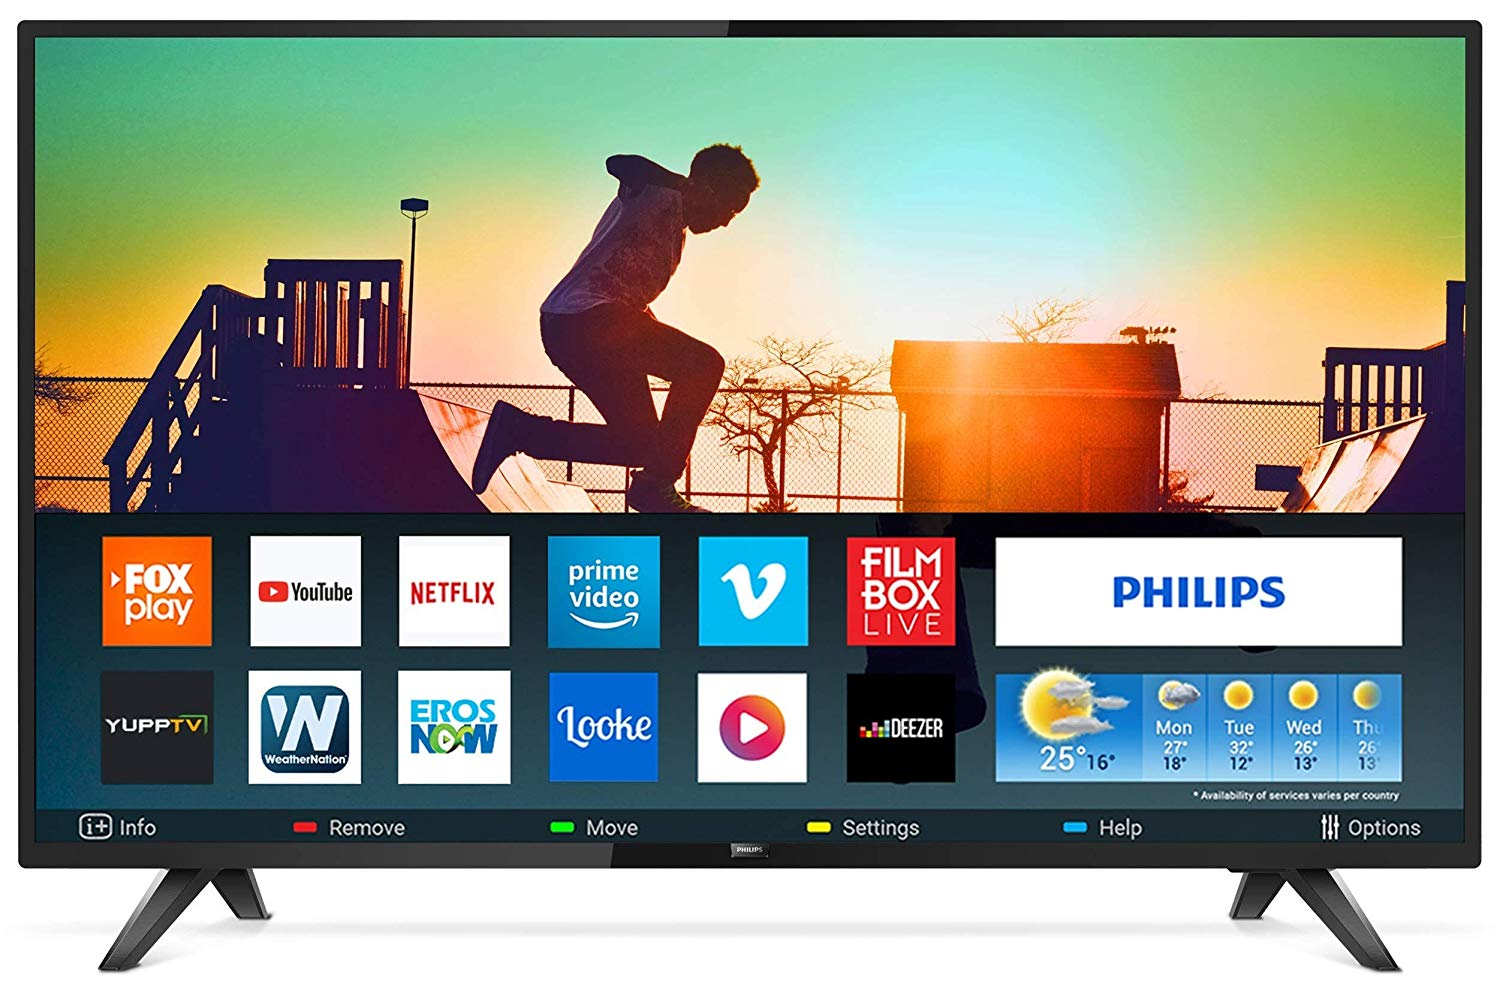 Top Best 3 Philips Television in 20000 Rs in india 2020